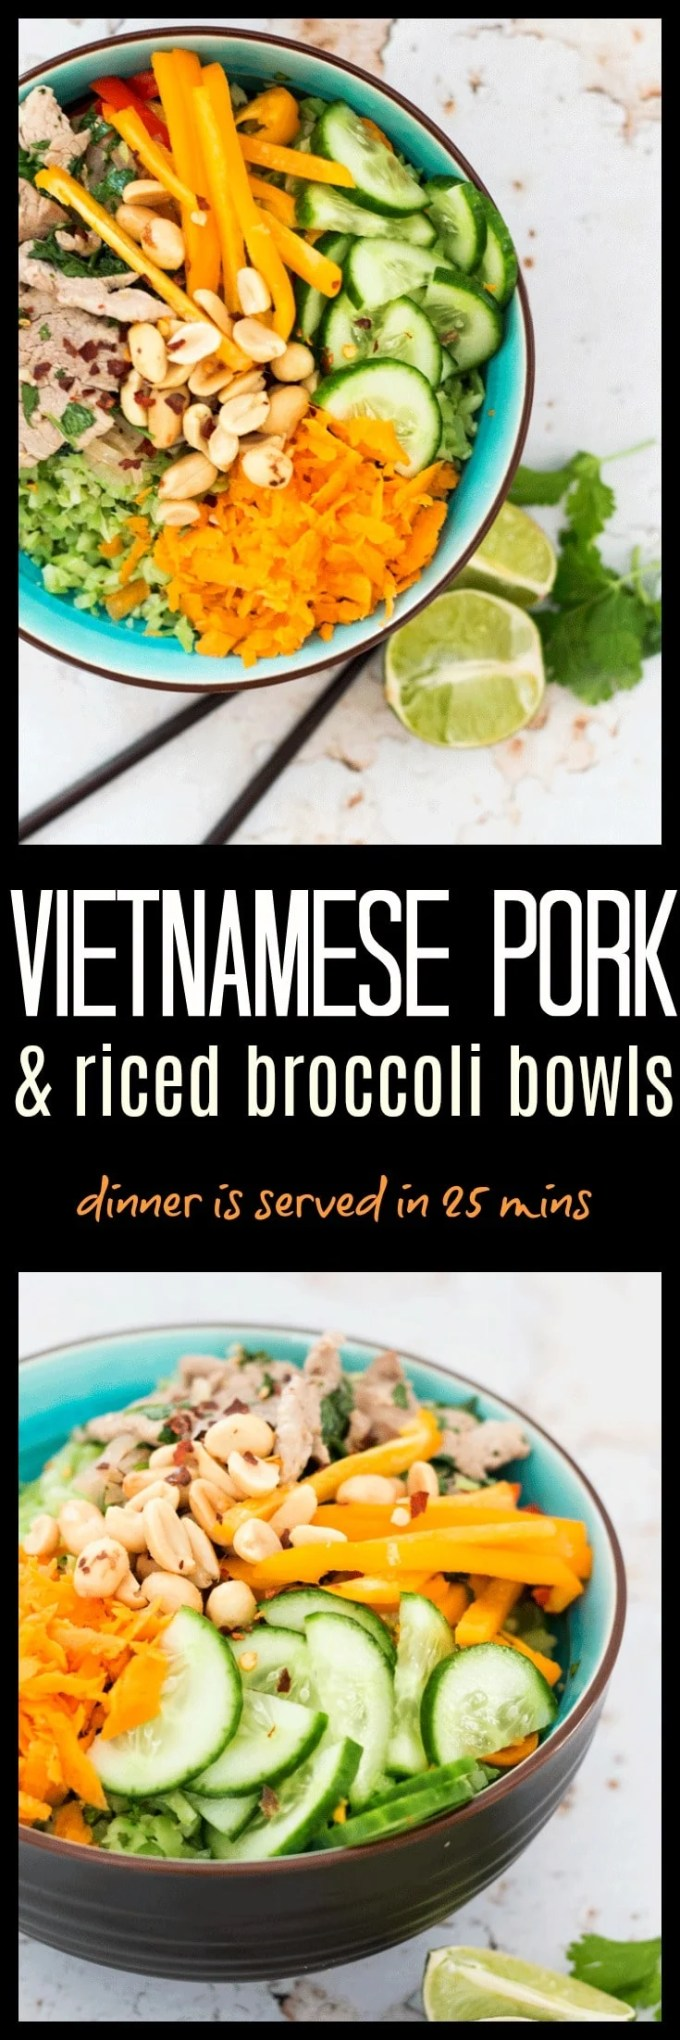 This Quick Vietnamese Pork and Riced Broccoli Bowl is the answer to that ever recurring problem of what's for dinner tonight. They come together in just thirty minutes (less if you have some riced broccoli stored in the freezer), are delicious and satisfying, and make absolutely fantastic leftovers for lunch the next day.